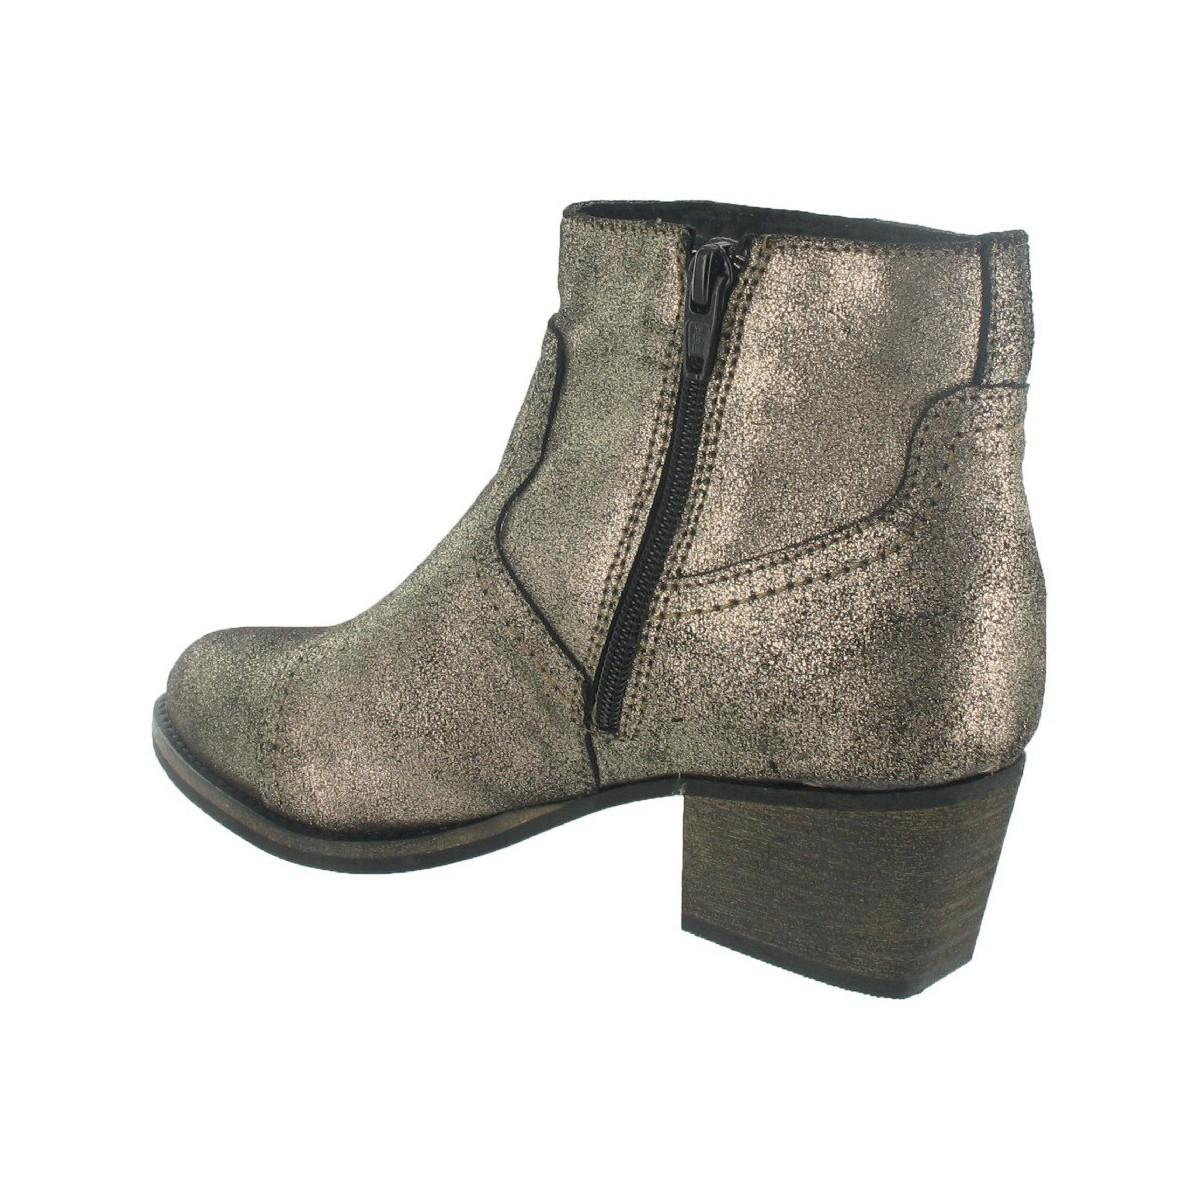 Marta Jonsson Leather Ankle Boots in Gold (Metallic)